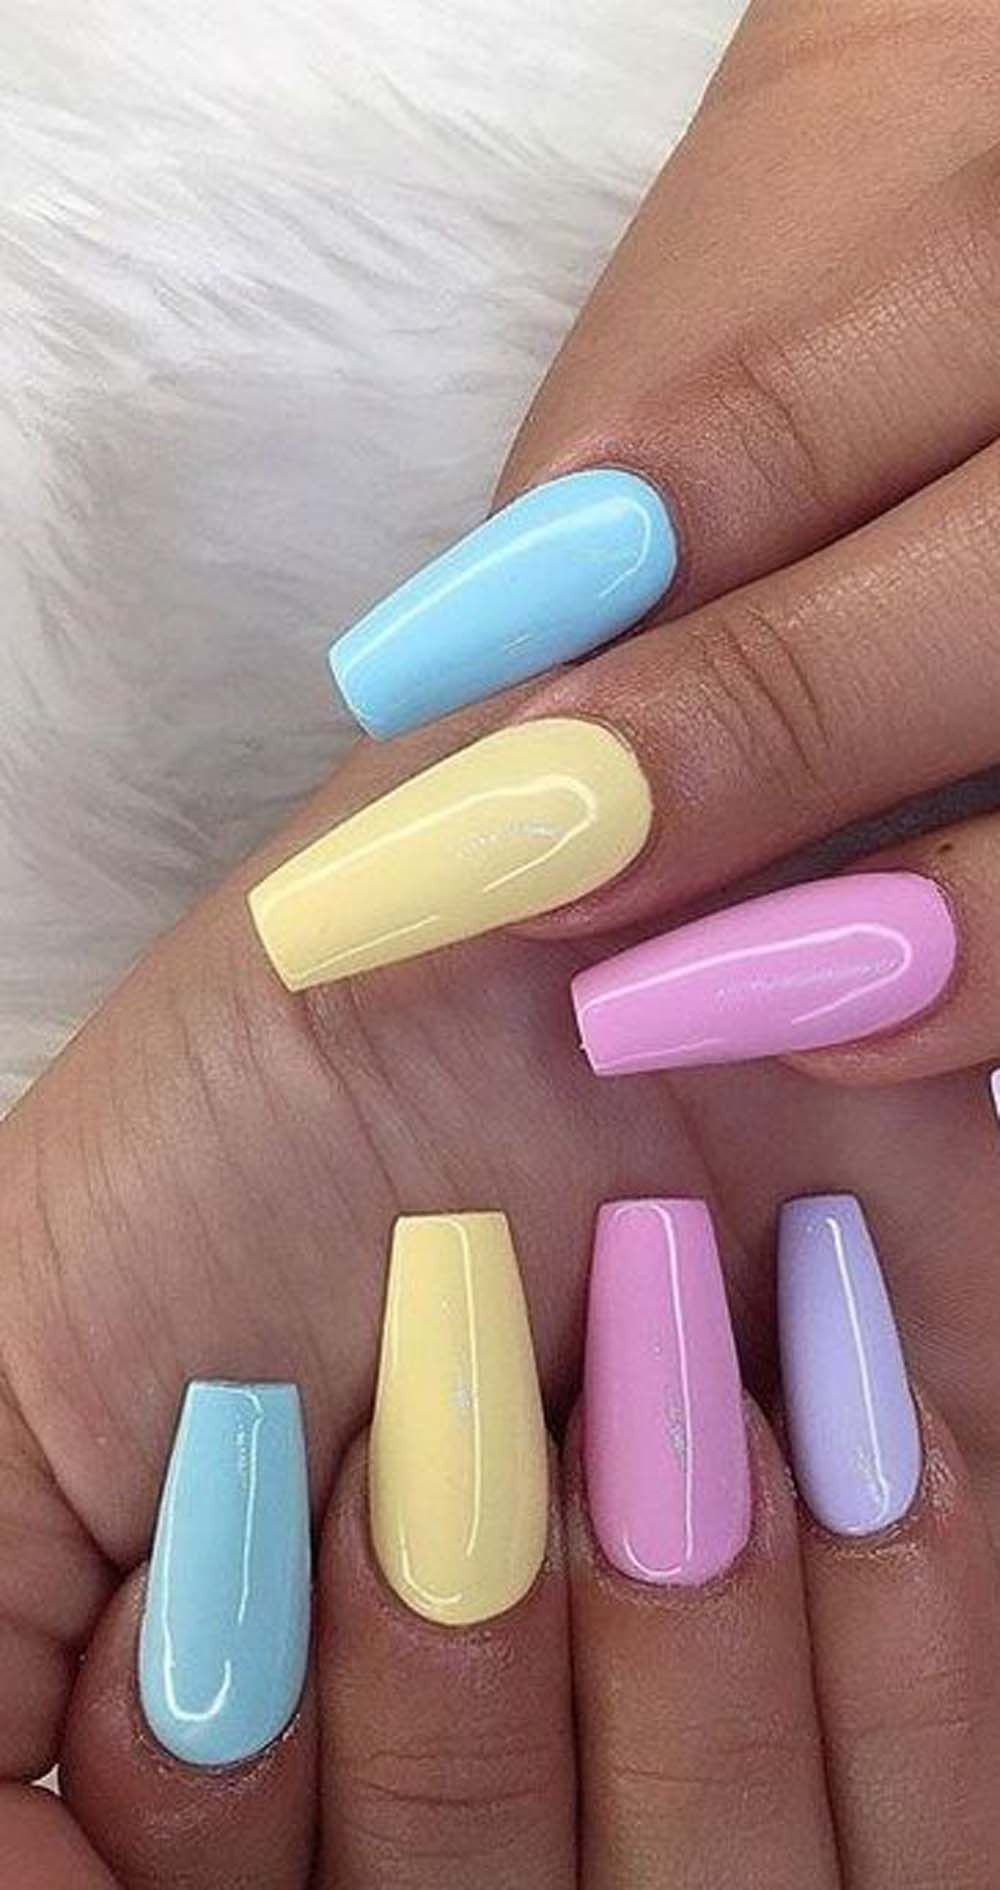 10 Stunning Spring Pastel Coffin Nails For Your Beautiful Fingers